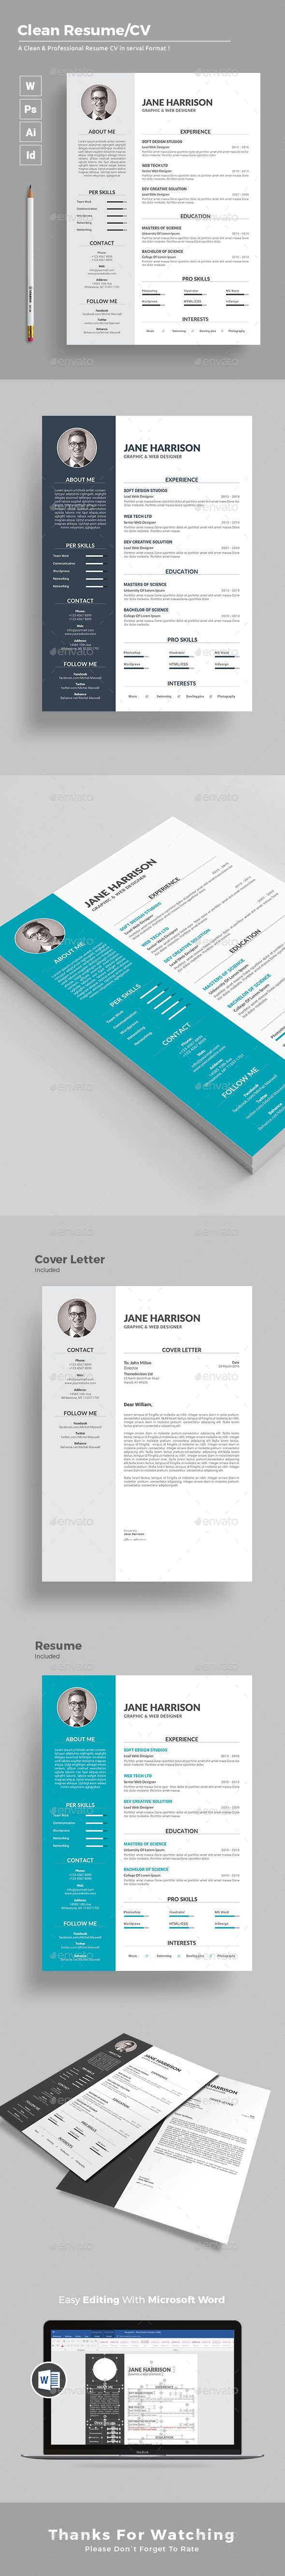 Chronological Resume Samples%0A  Resume  Resumes Stationery Download here  https   graphicriver net